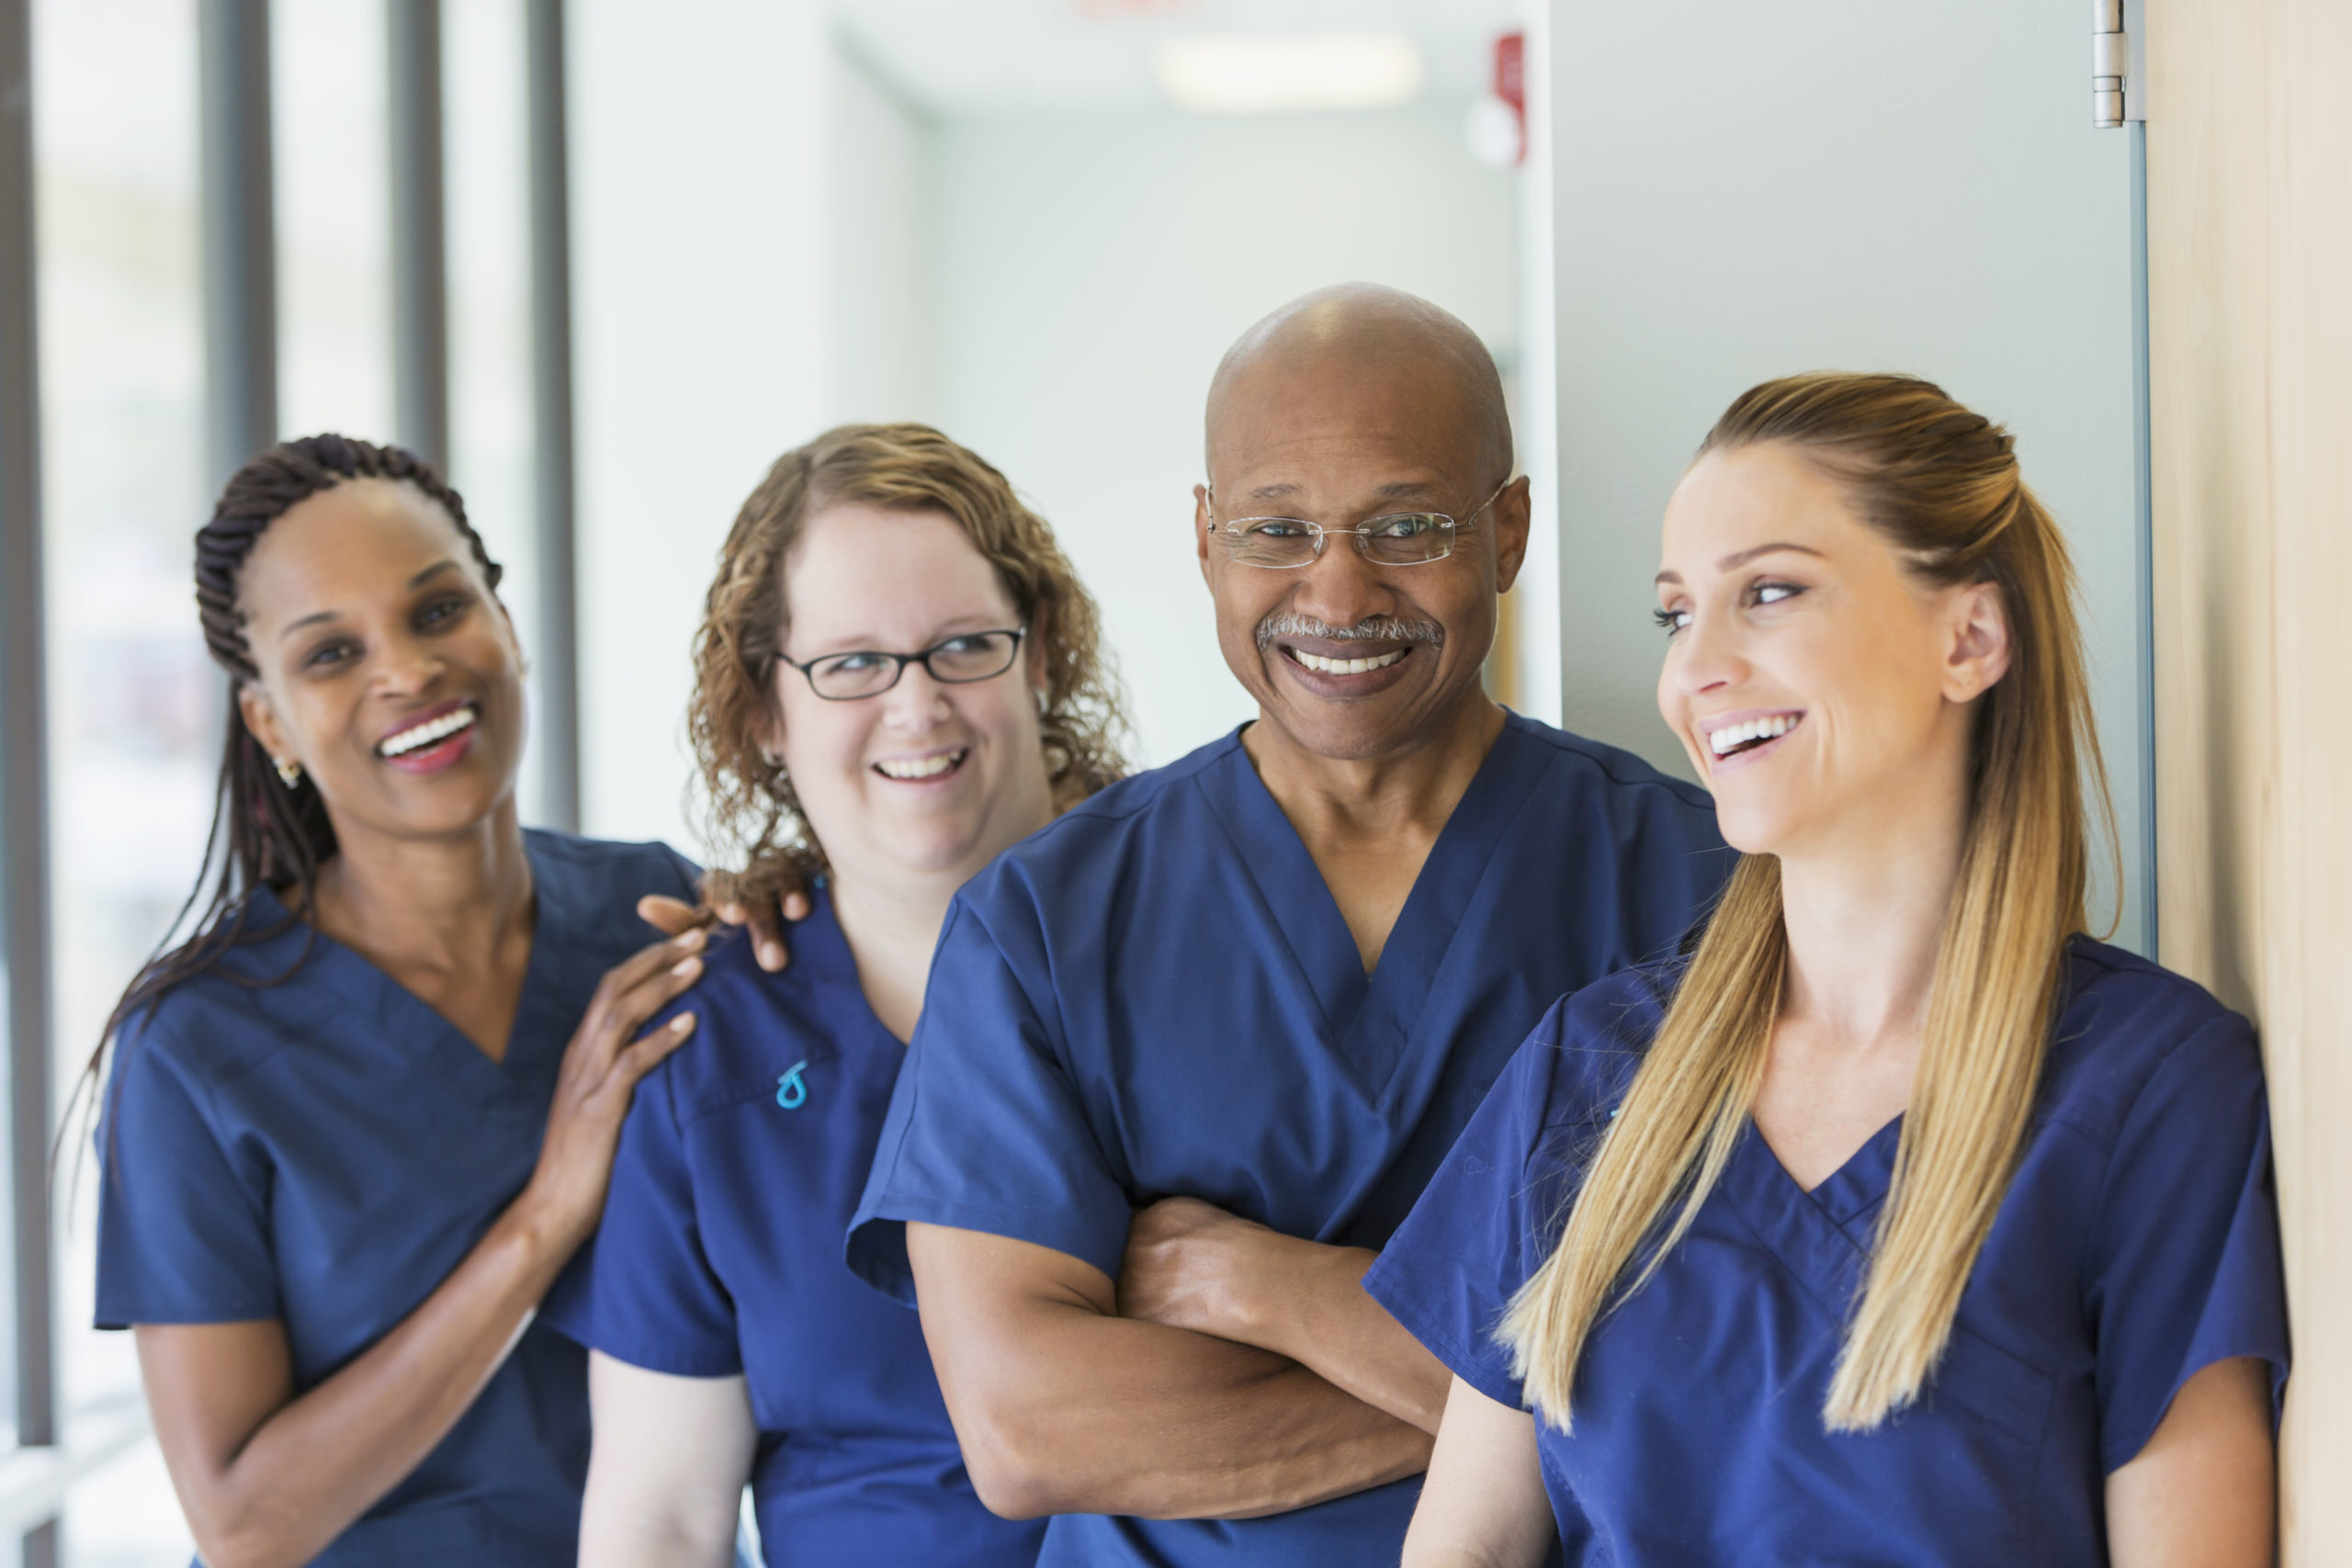 A team of four multi-ethnic medical professionals standing in a corridor, wearing blue scrubs. The focus is on the African-American senior man, in his 60s smiling at the camera.